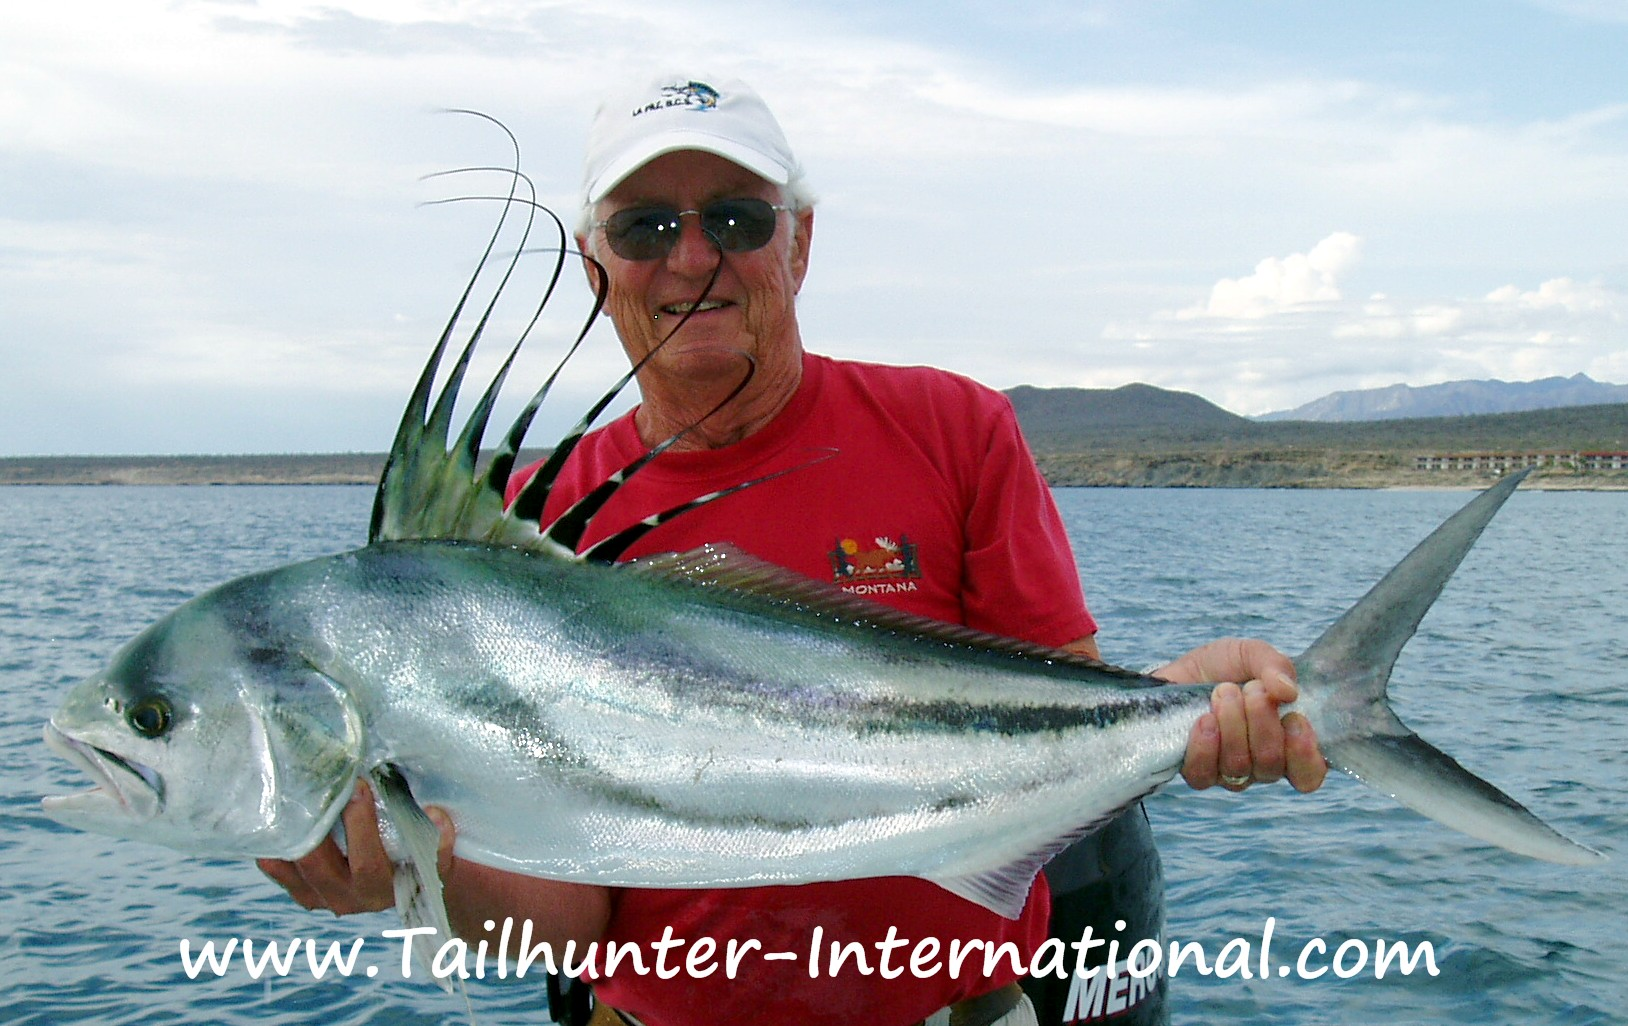 La paz las arenas fishing report from tailhunter for Fishing new mexico